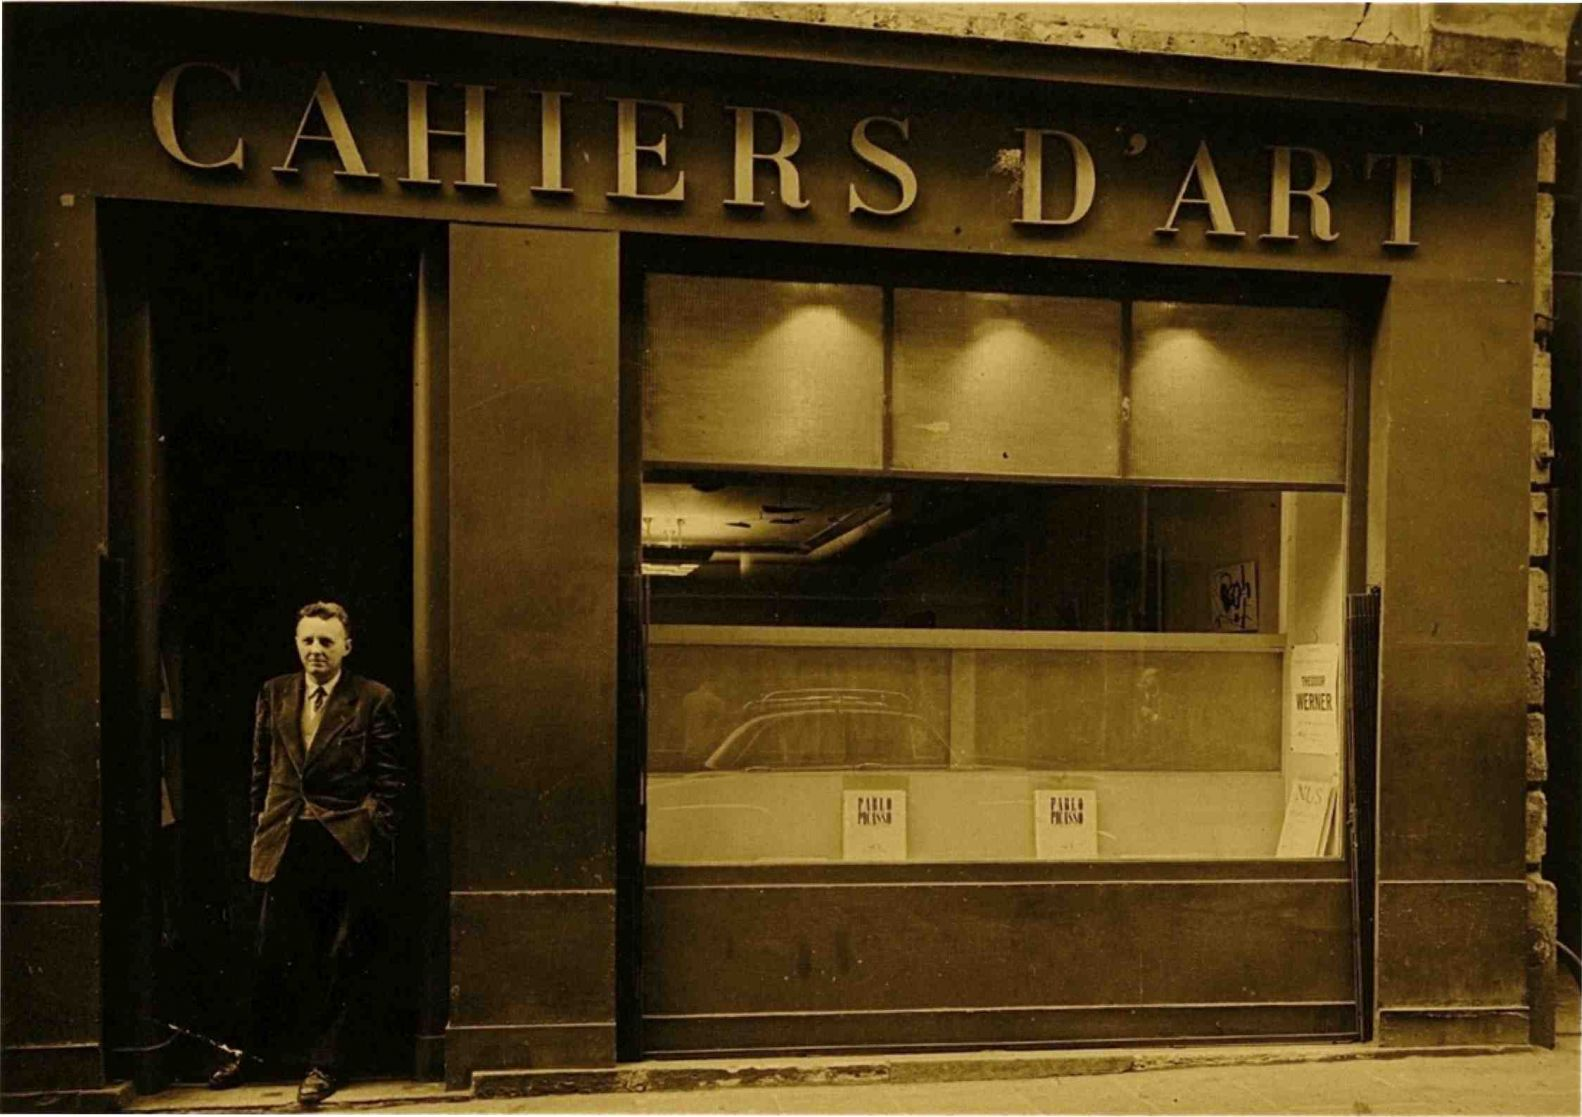 Marc de Fontbrune at the Cahiers d'Art gallery 1957